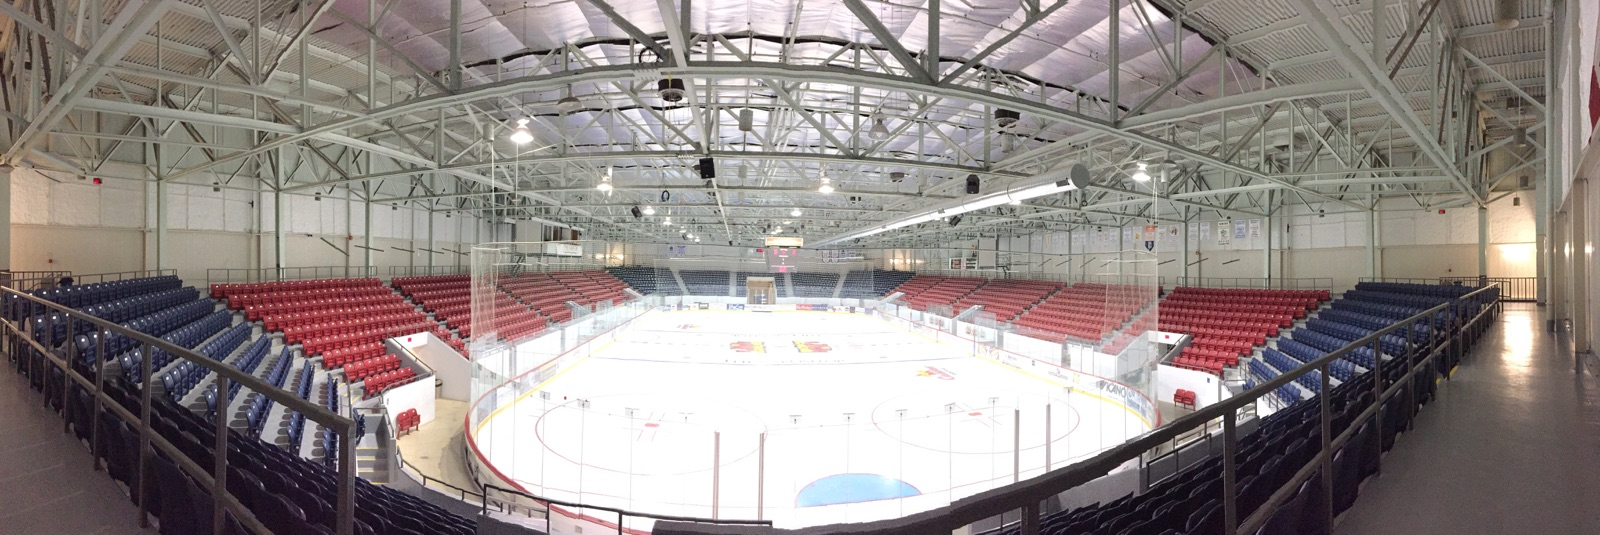 Civic Centre Rink View.jpg